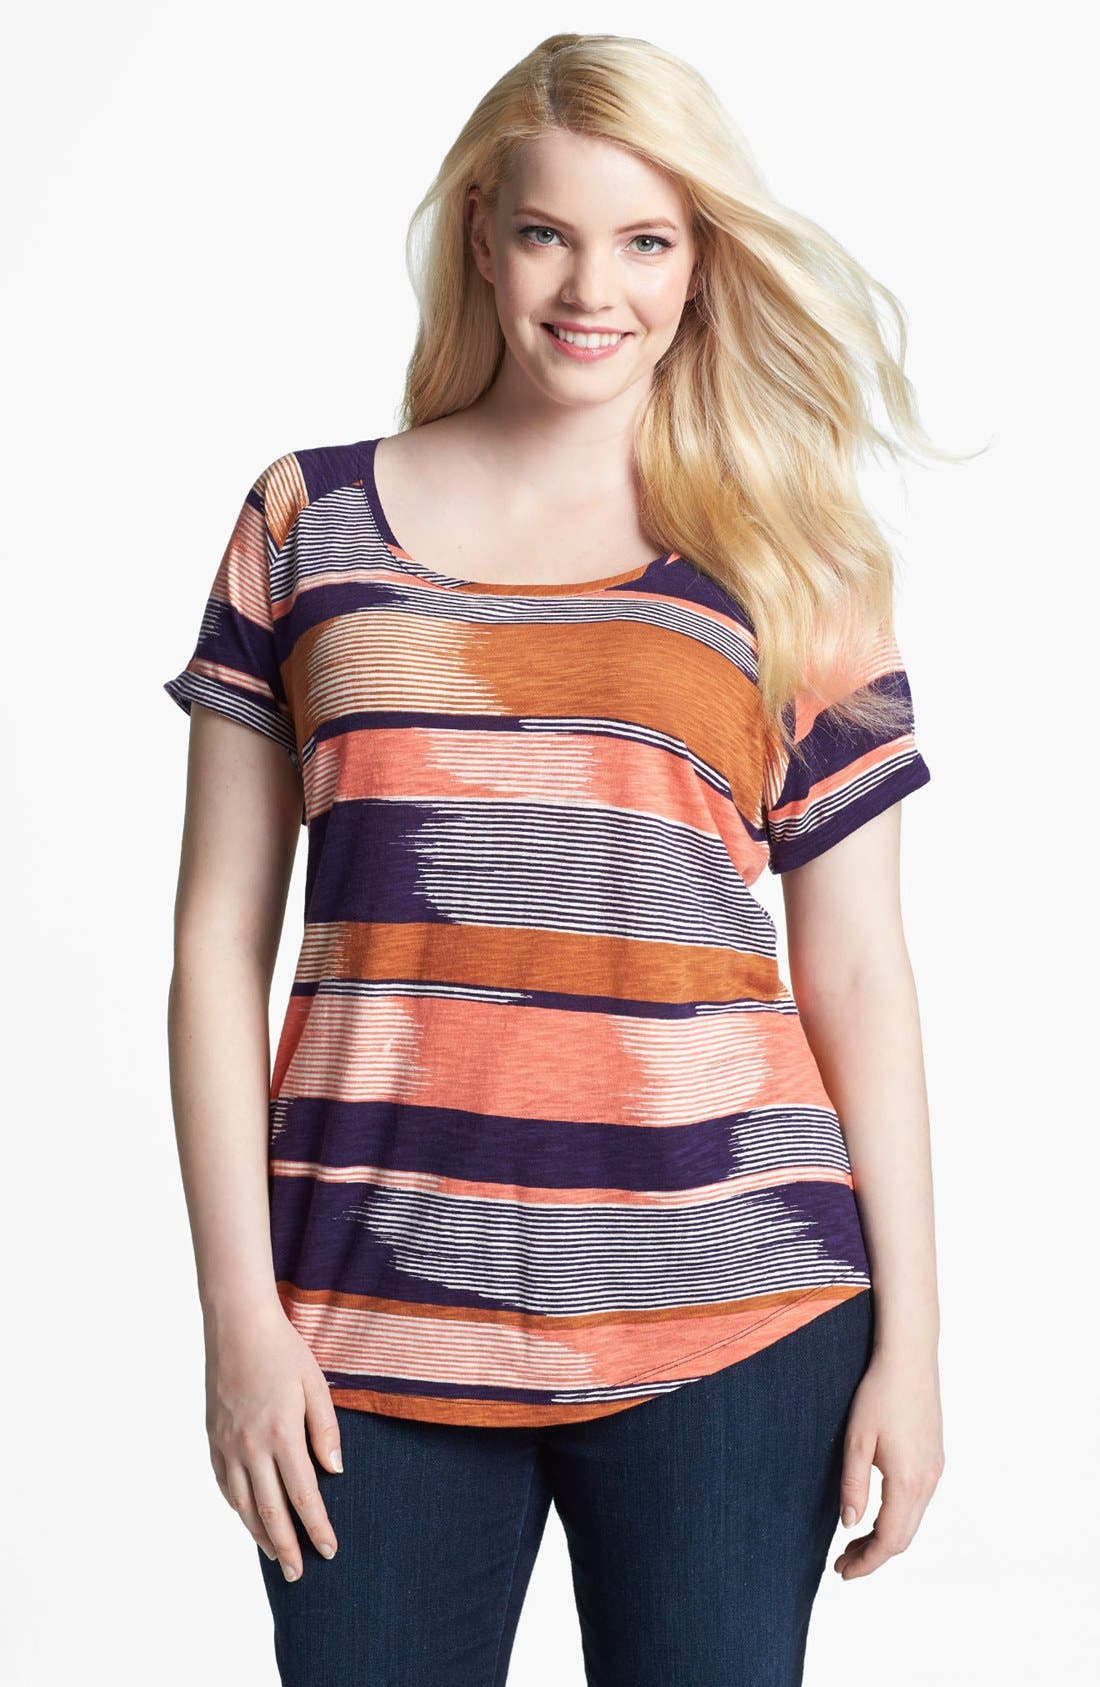 Alternate Image 1 Selected - Lucky Brand 'Alina' Stripe Tee (Plus)